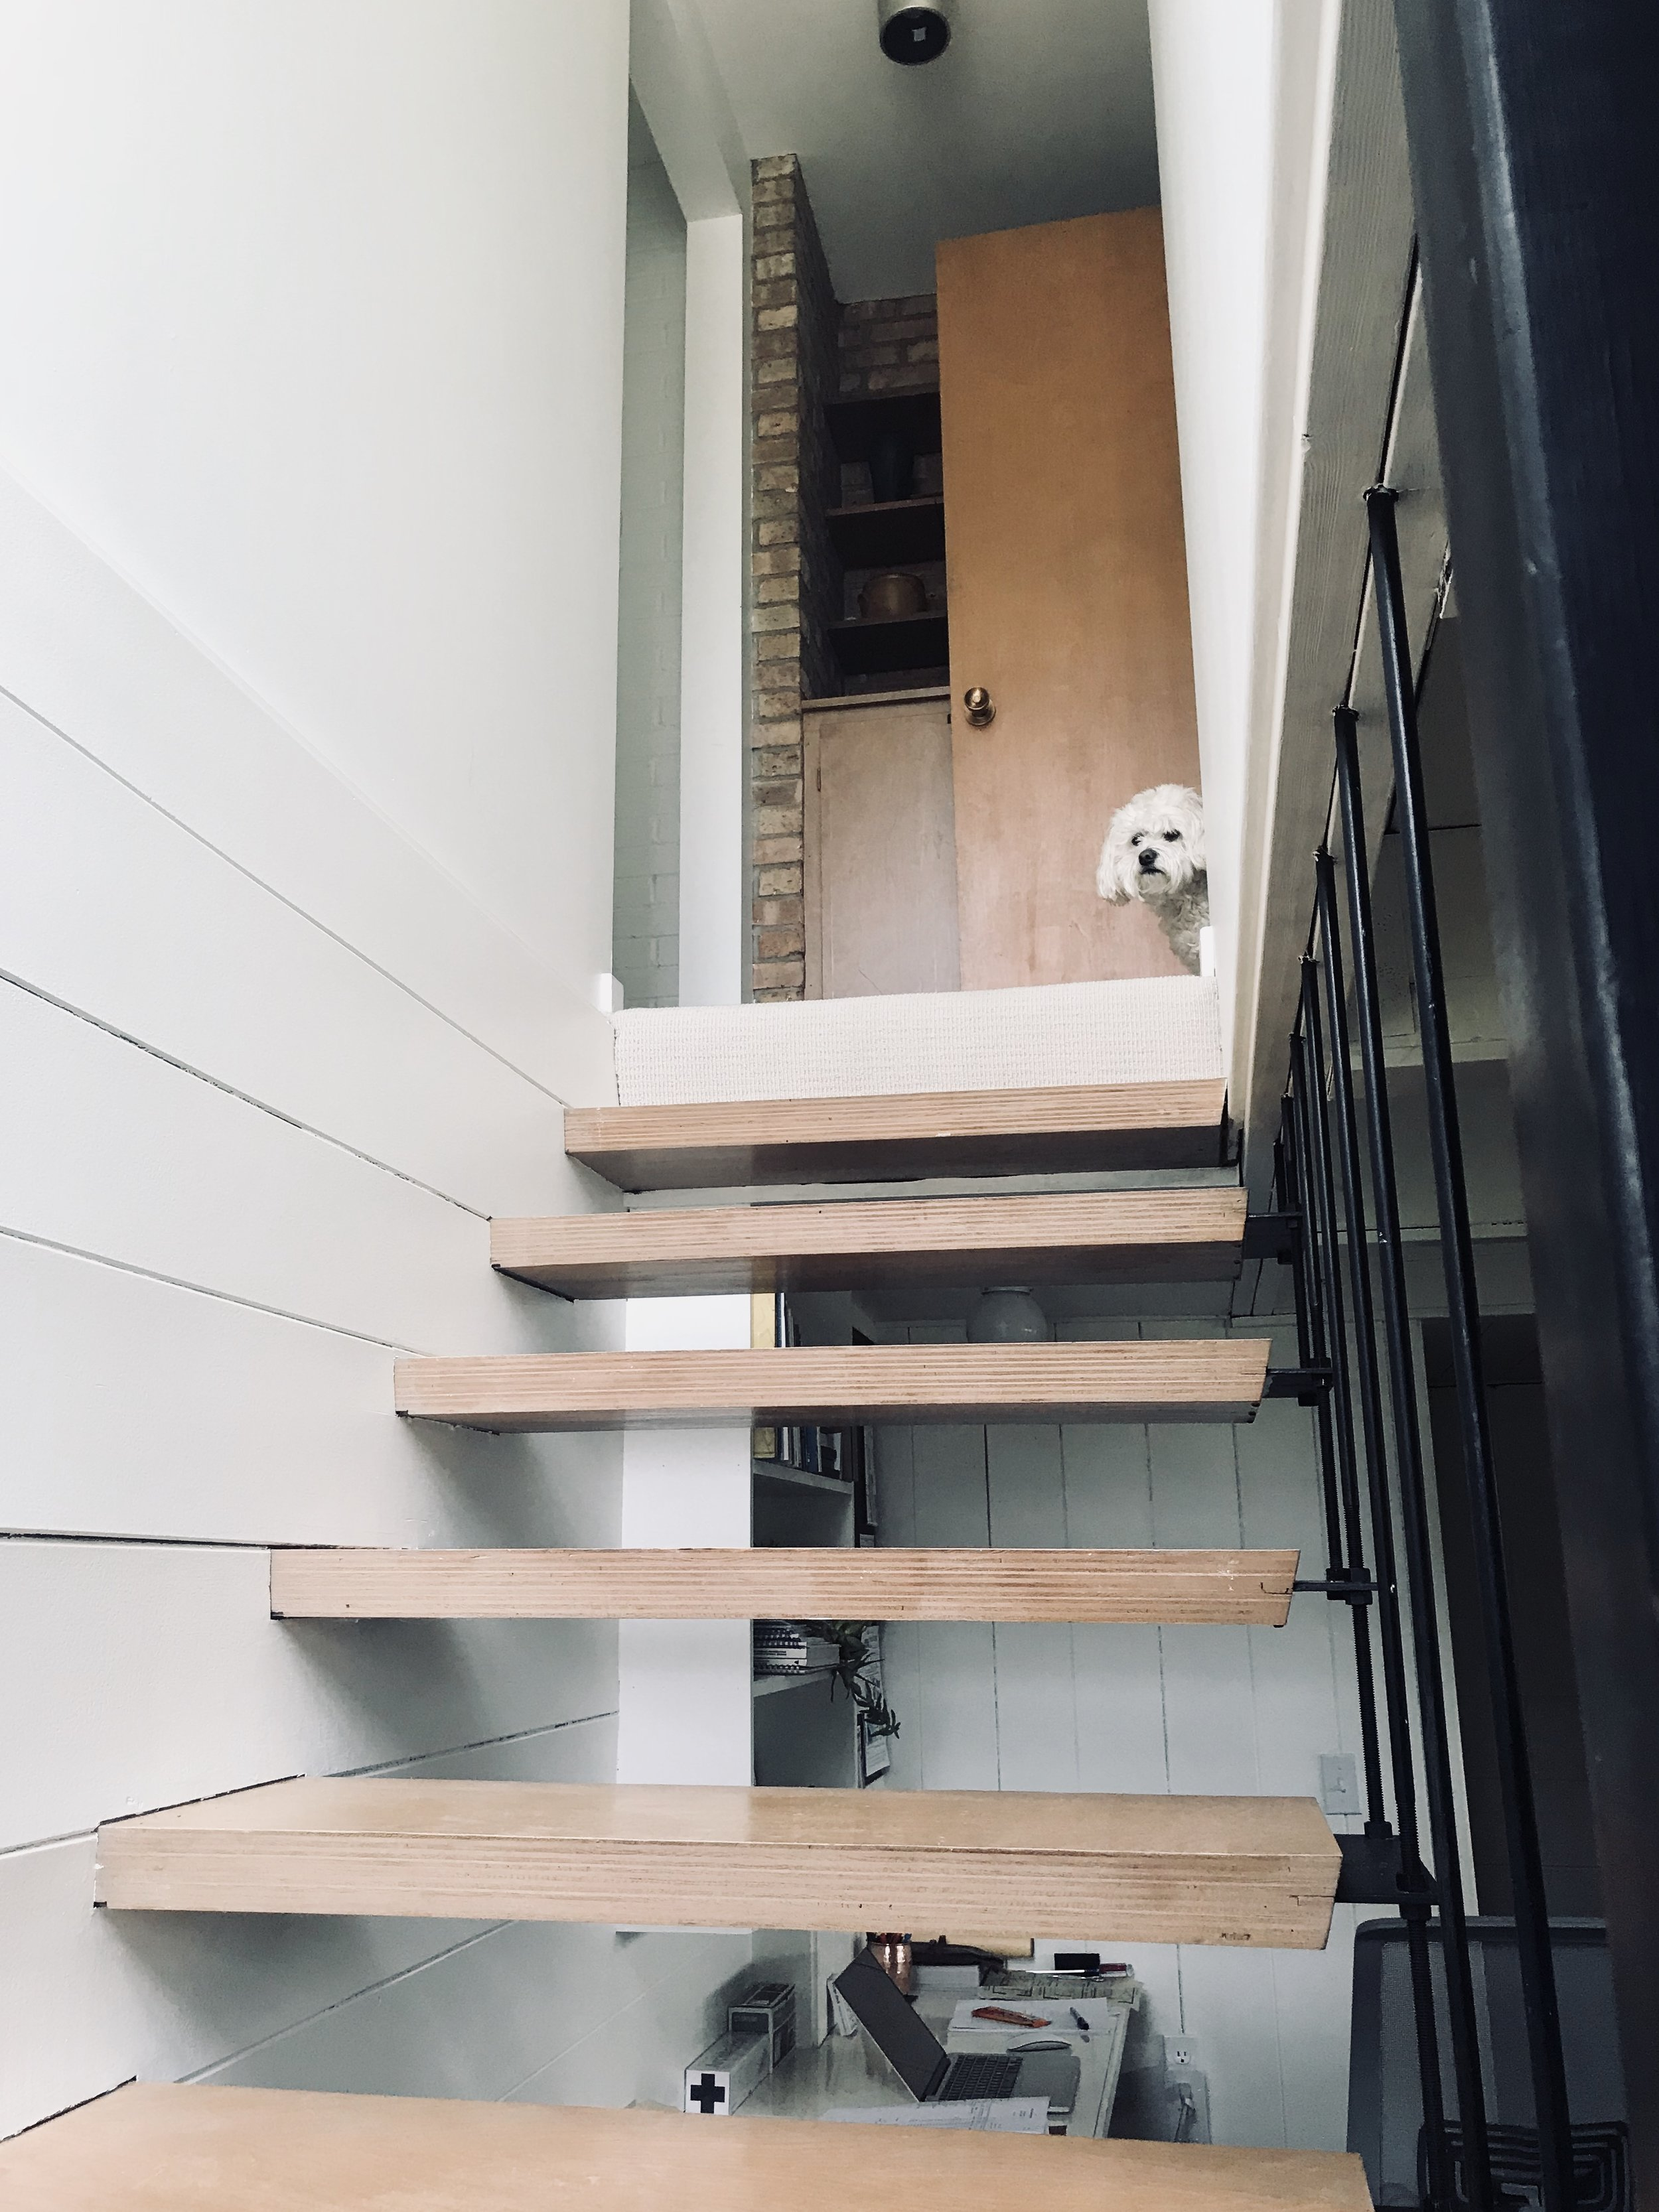 2360 7th Street Floating Stairway with Doggie.jpg